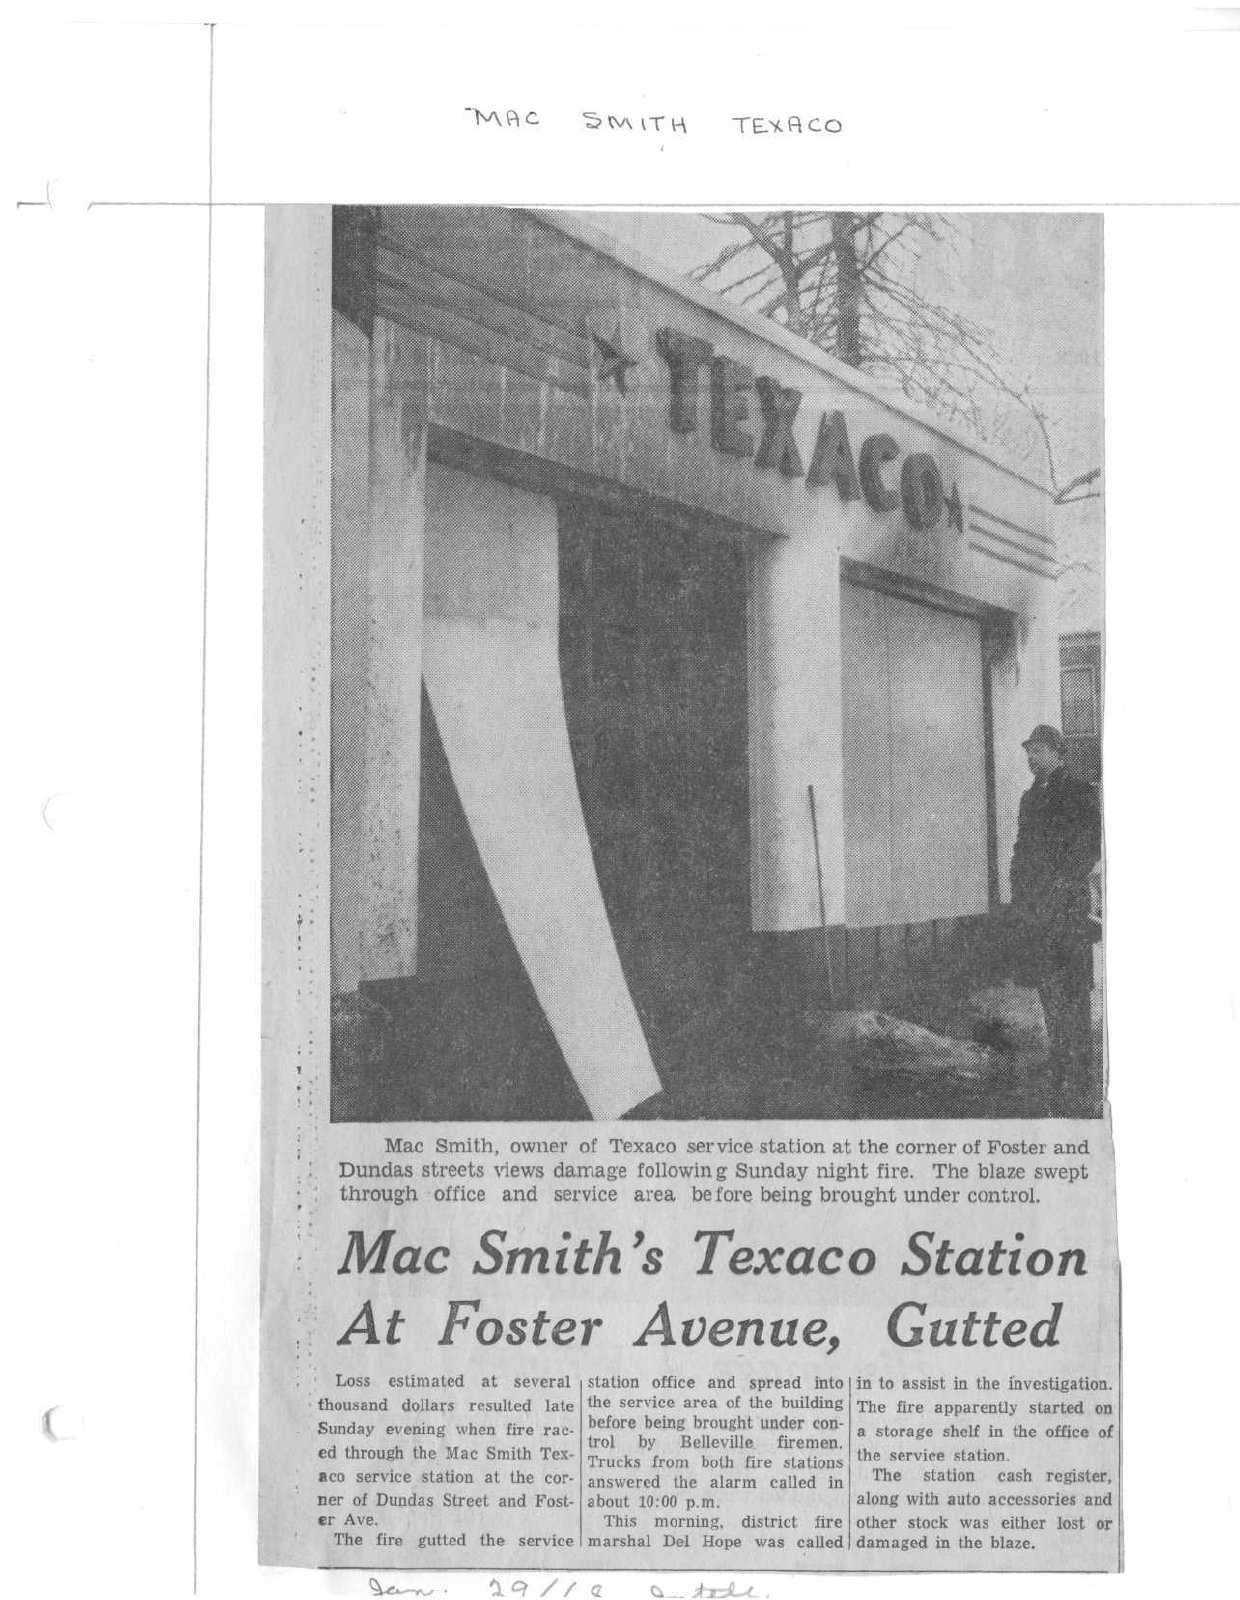 Mac Smith's Texaco Station at Foster Avenue Gutted: Belleville